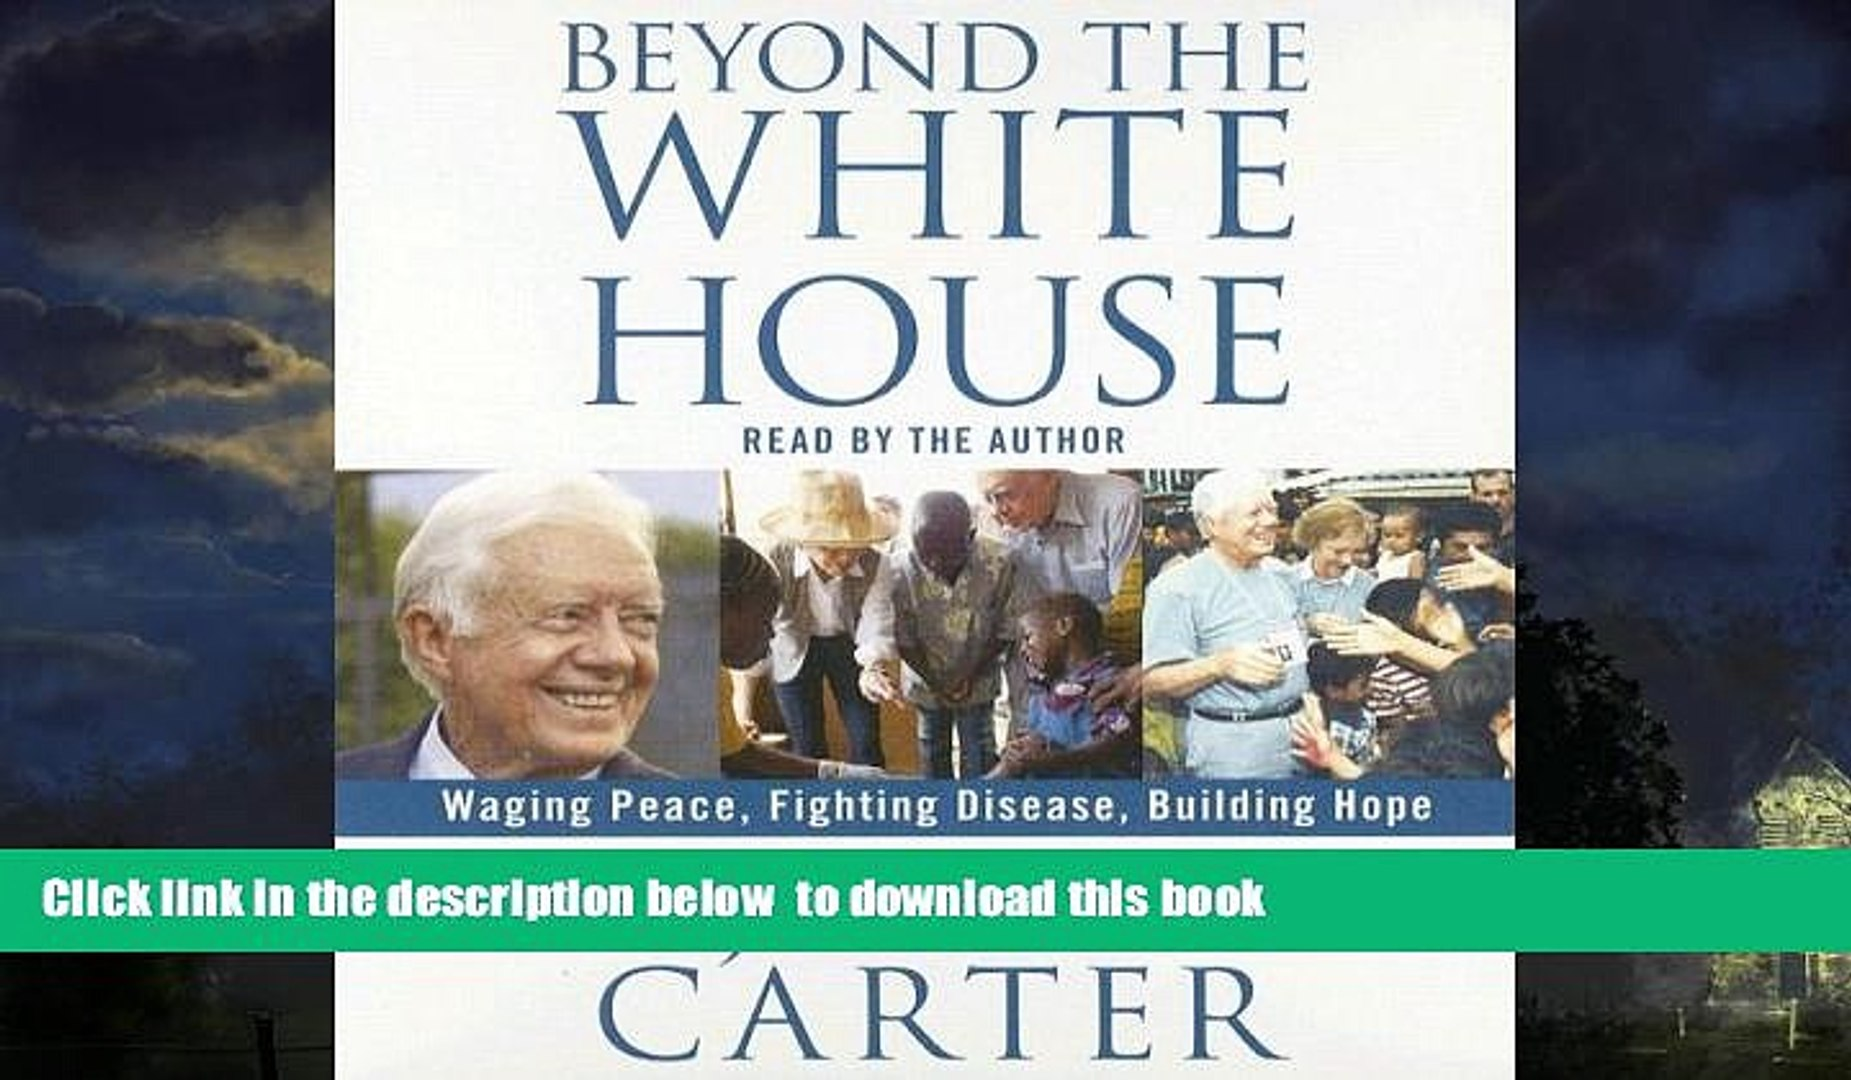 Best Price Jimmy Carter Beyond the White House: Waging Peace, Fighting Disease, Building Hope